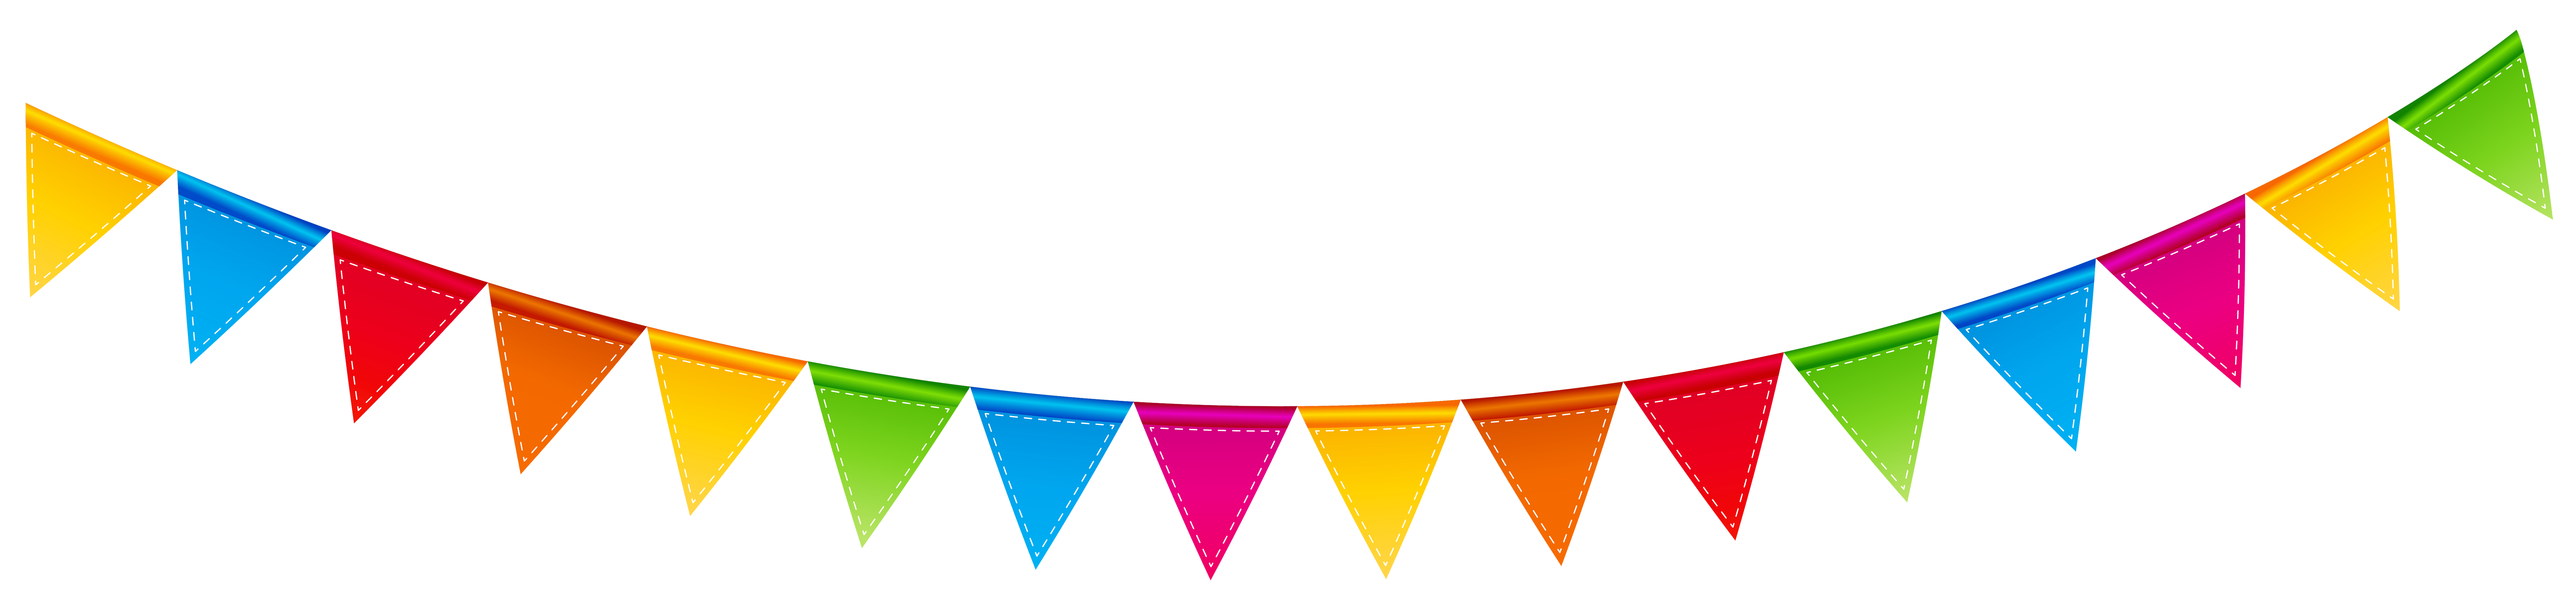 Birthday streamer transparent png. R clipart colorful